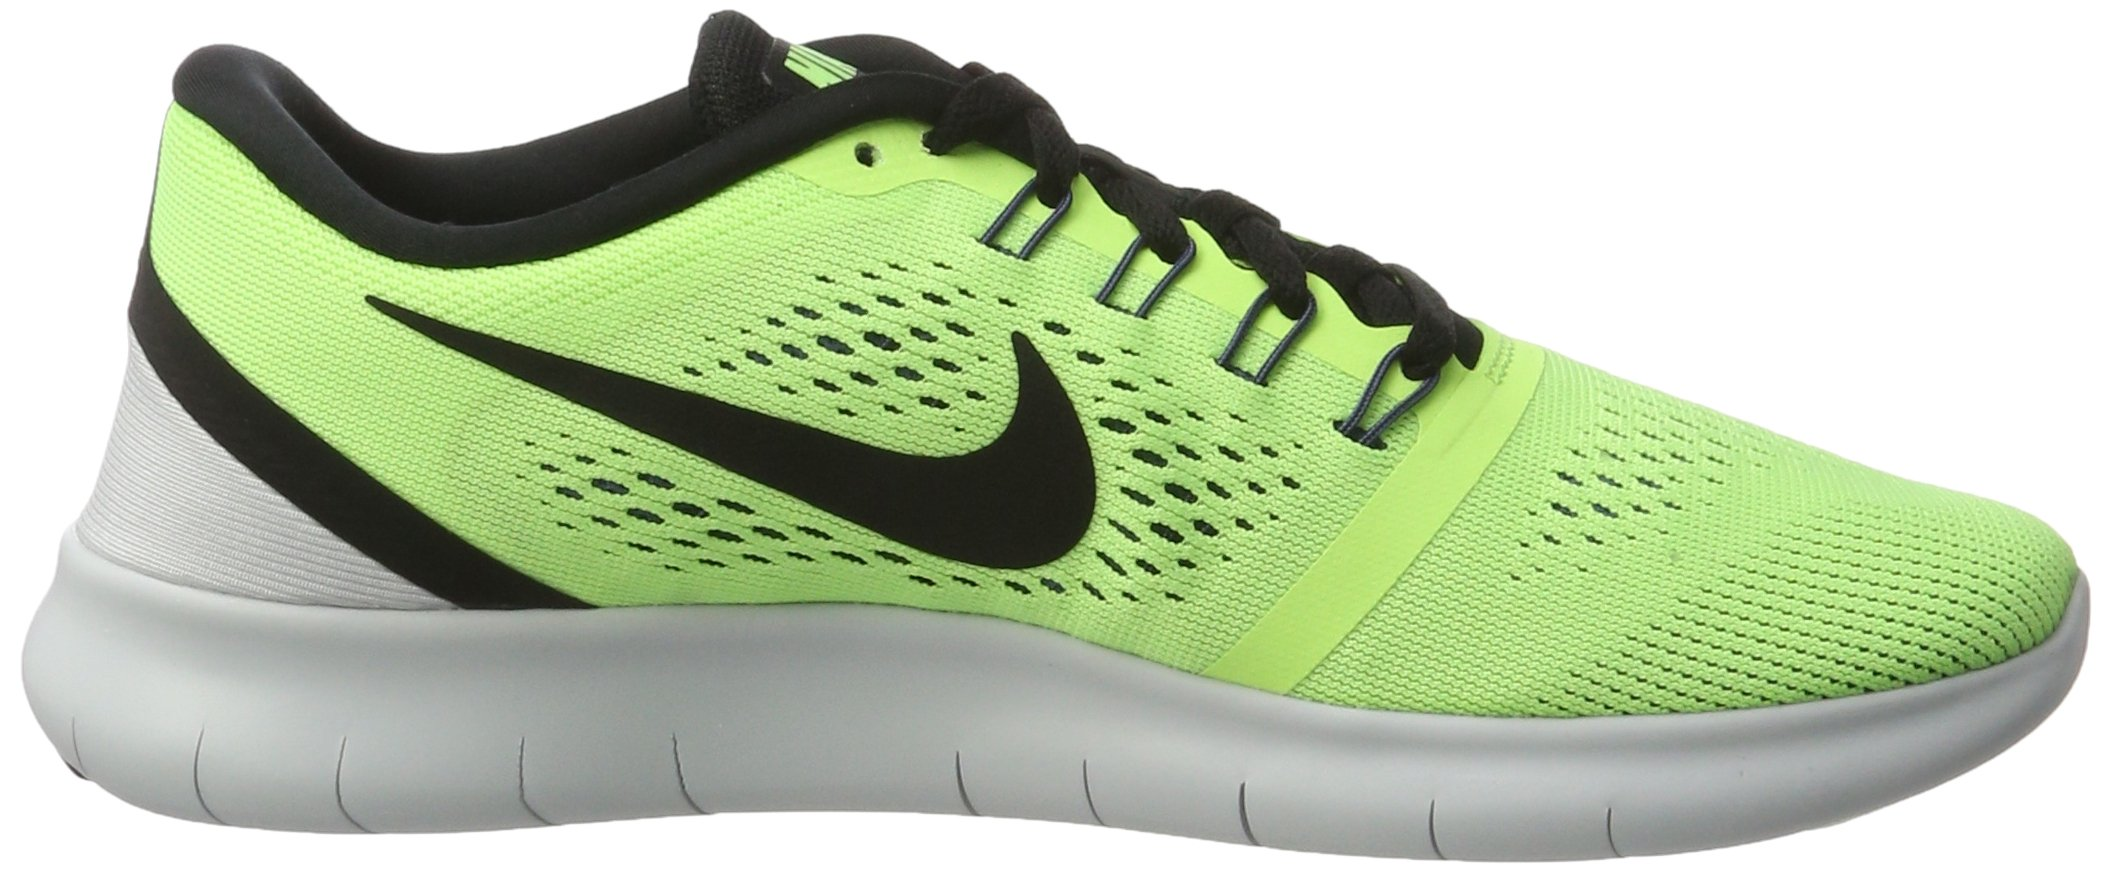 Nike Free RN Ghost Green/Black/Blue Moon Mens Running Shoes by Nike (Image #6)